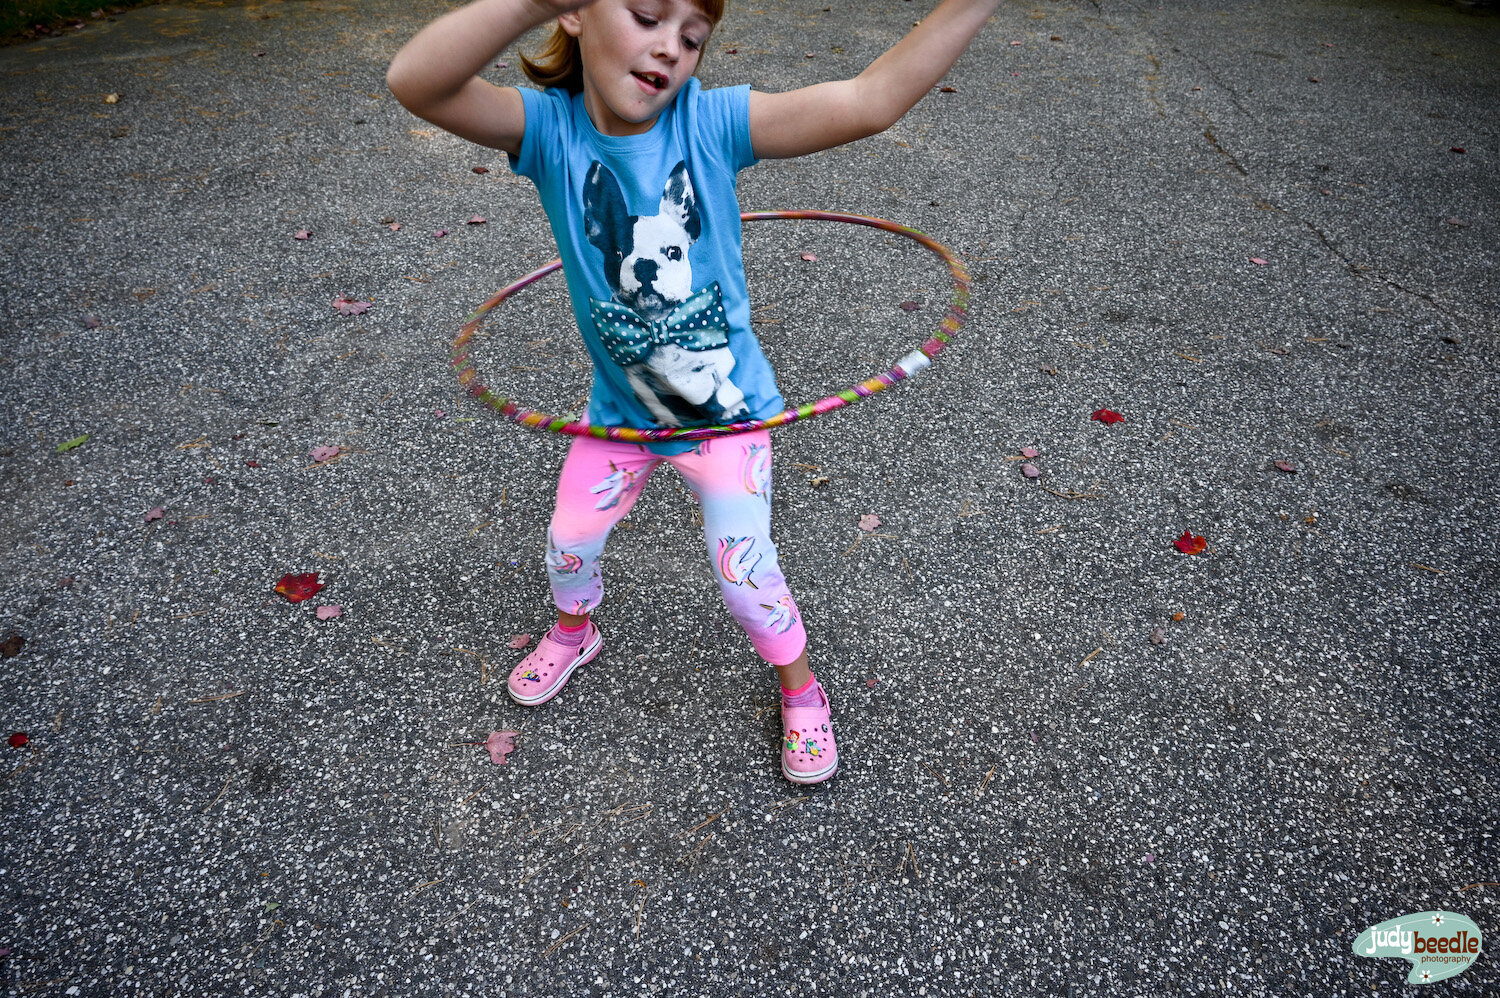 9/29. Hula hoop dance off with the niece.